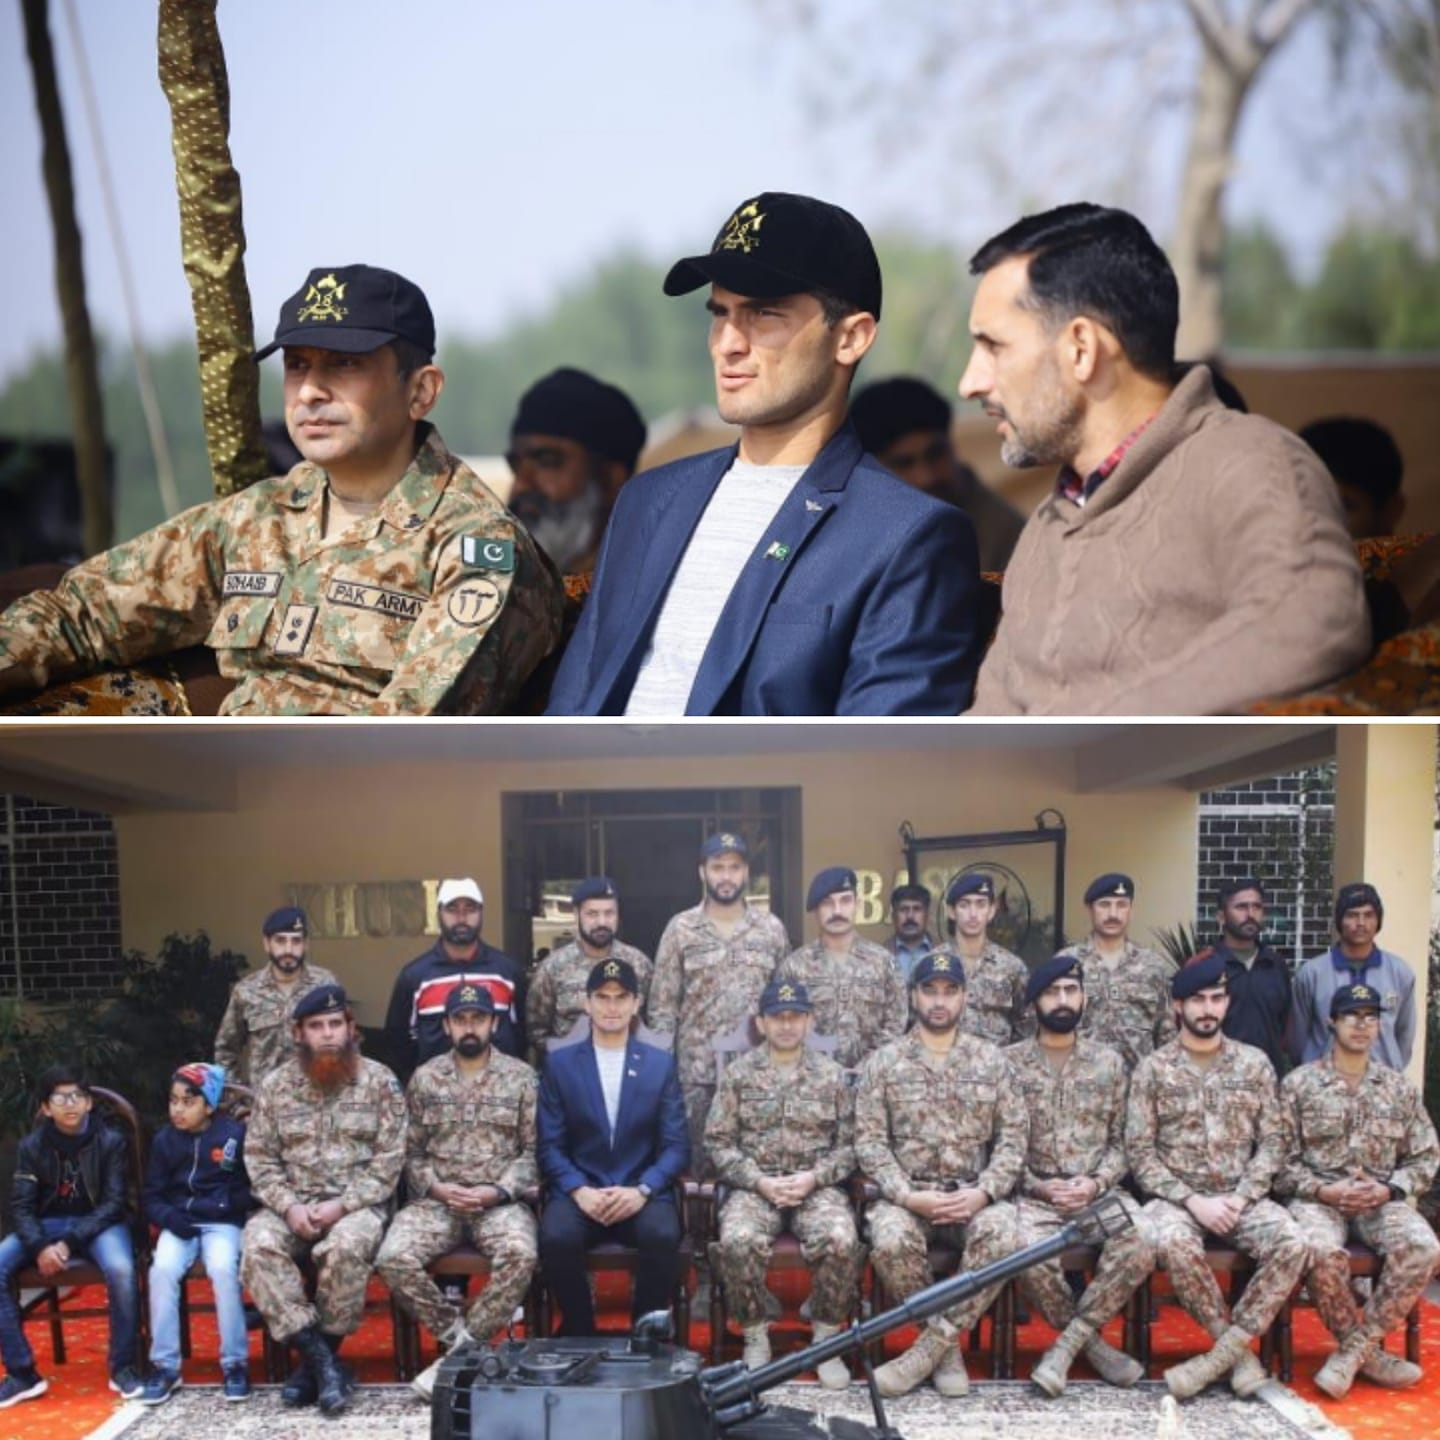 Shaheen Shah Afridi Spent Sometime With Pakistan Army Troops In Kashmore On Quaid